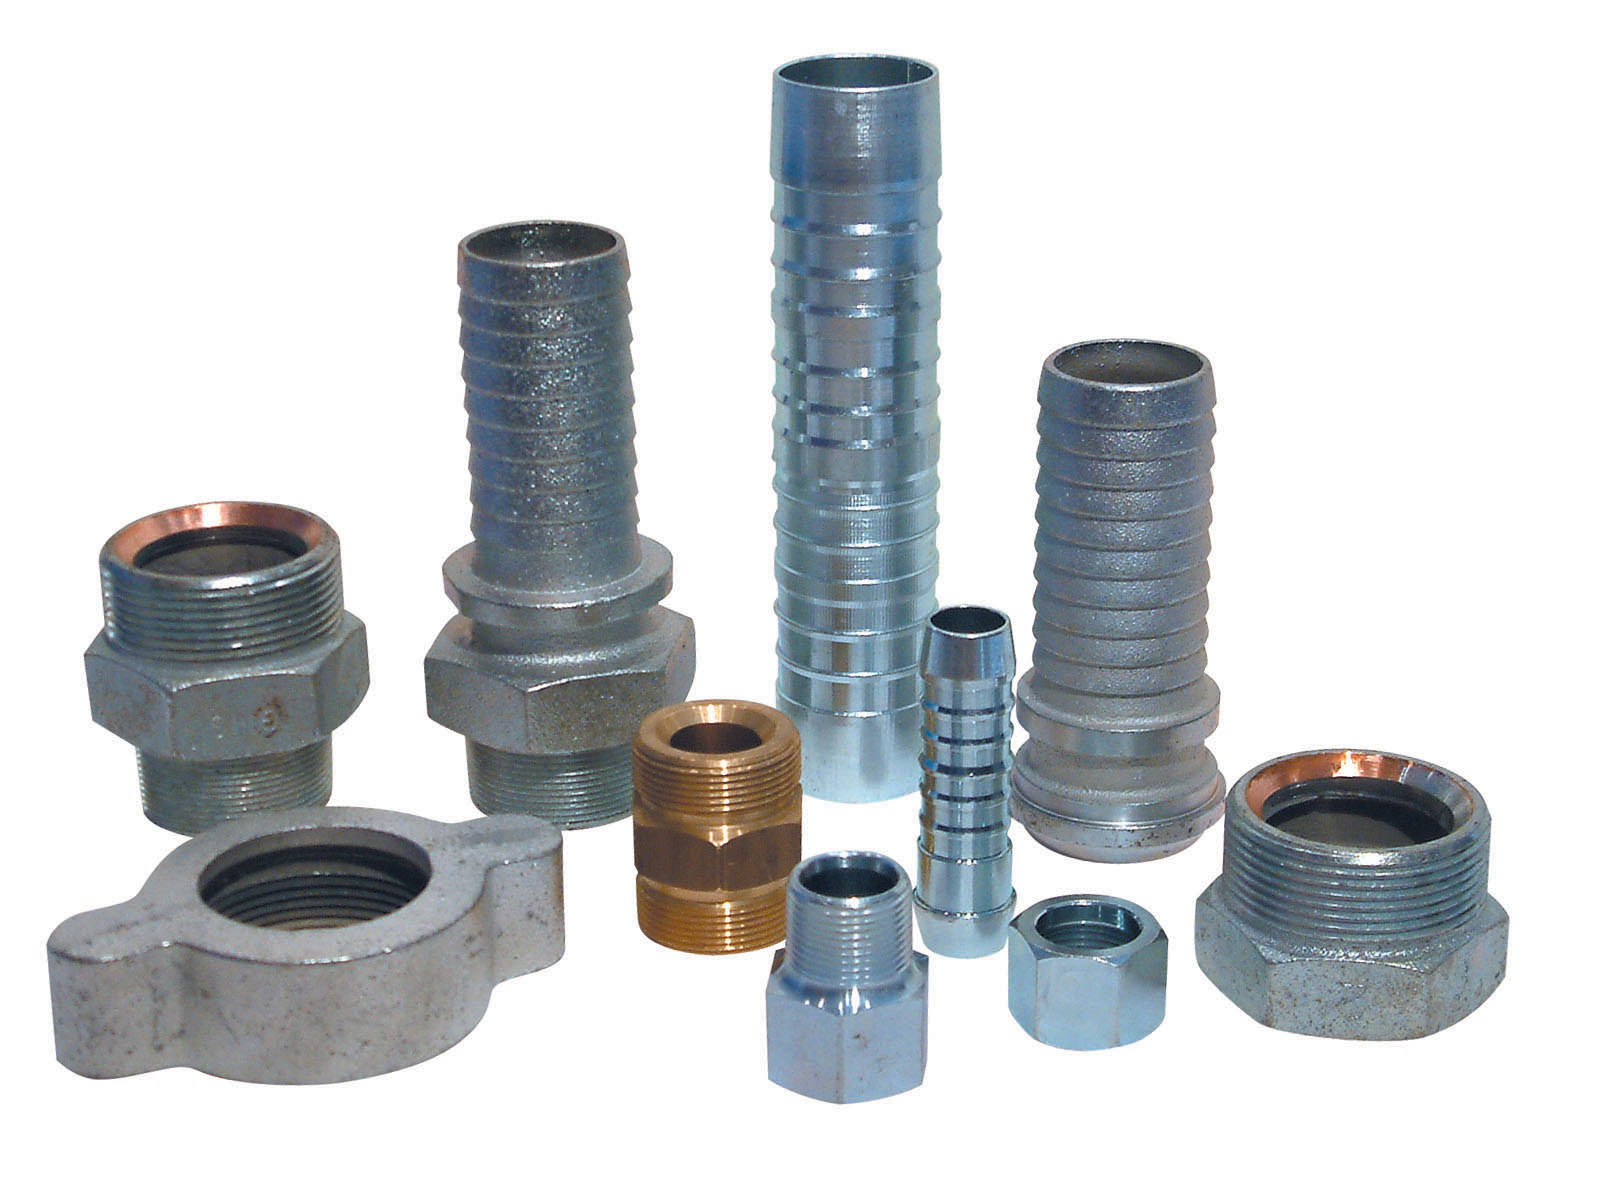 PicturesLogo/MINING FITTINGS.jpg